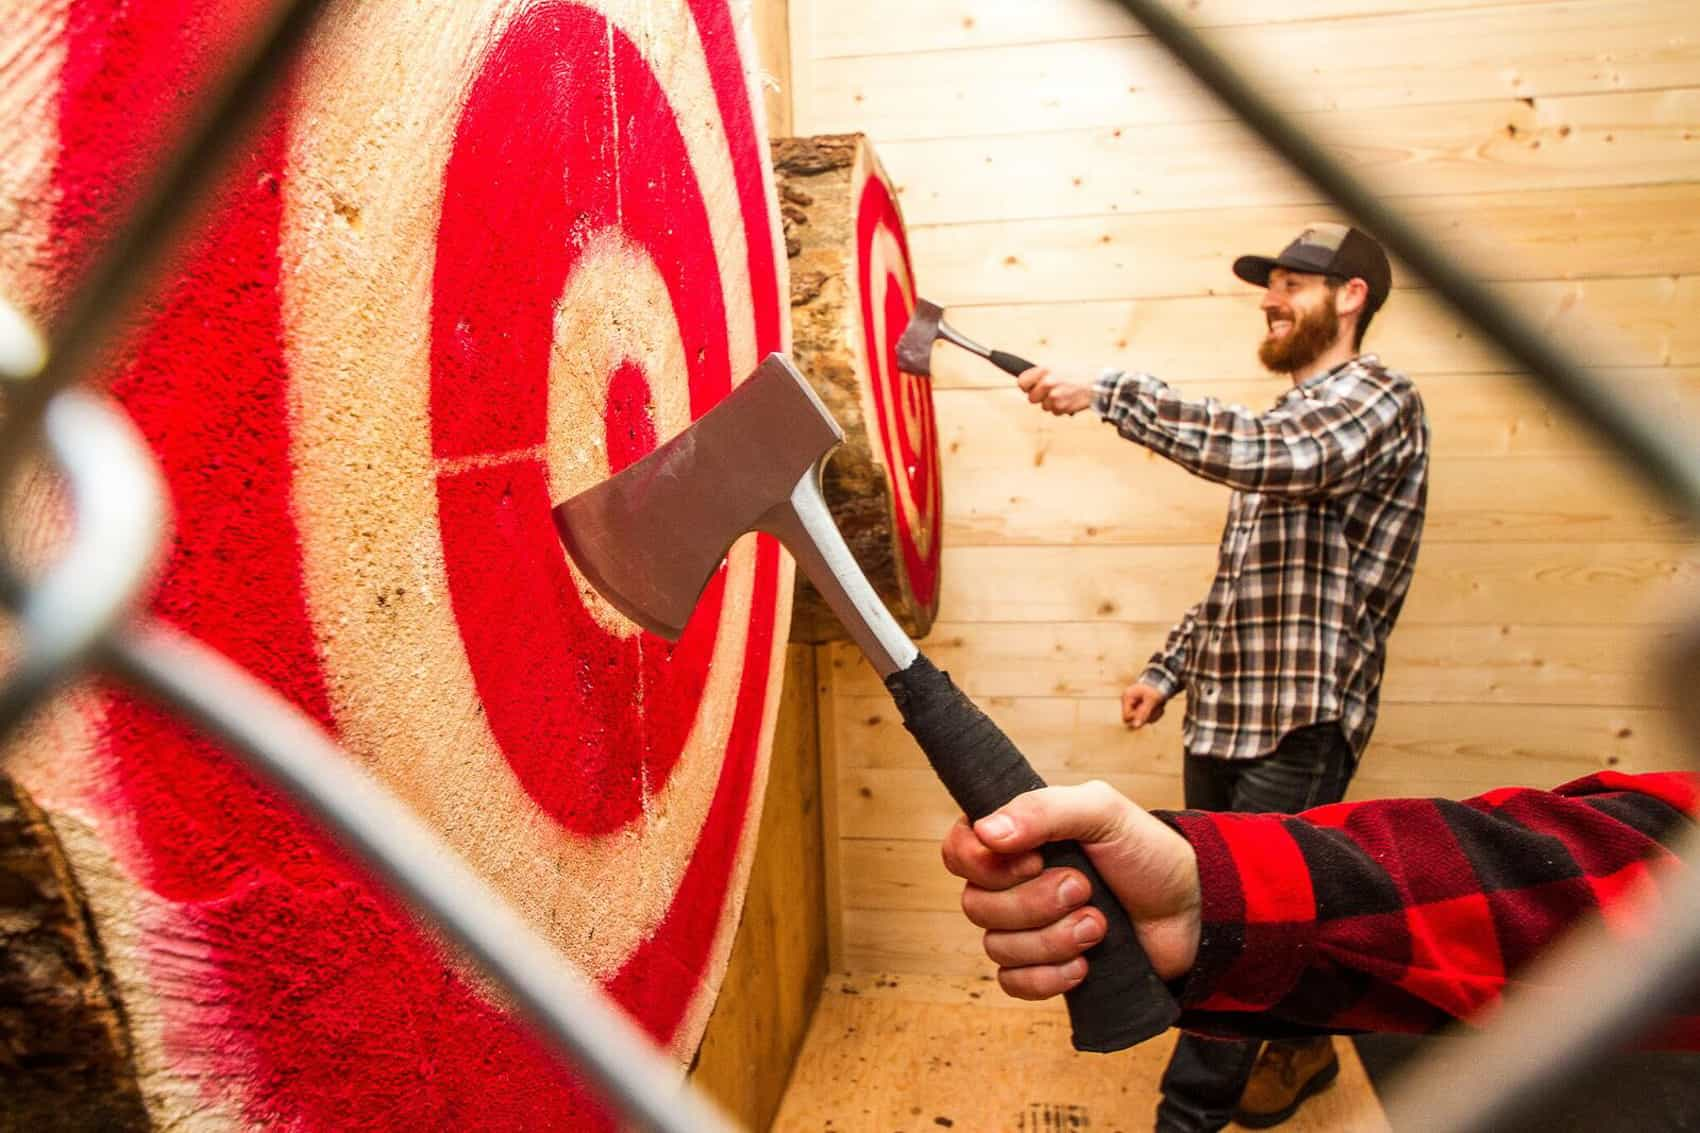 Peak Axe Throwing Revelstoke